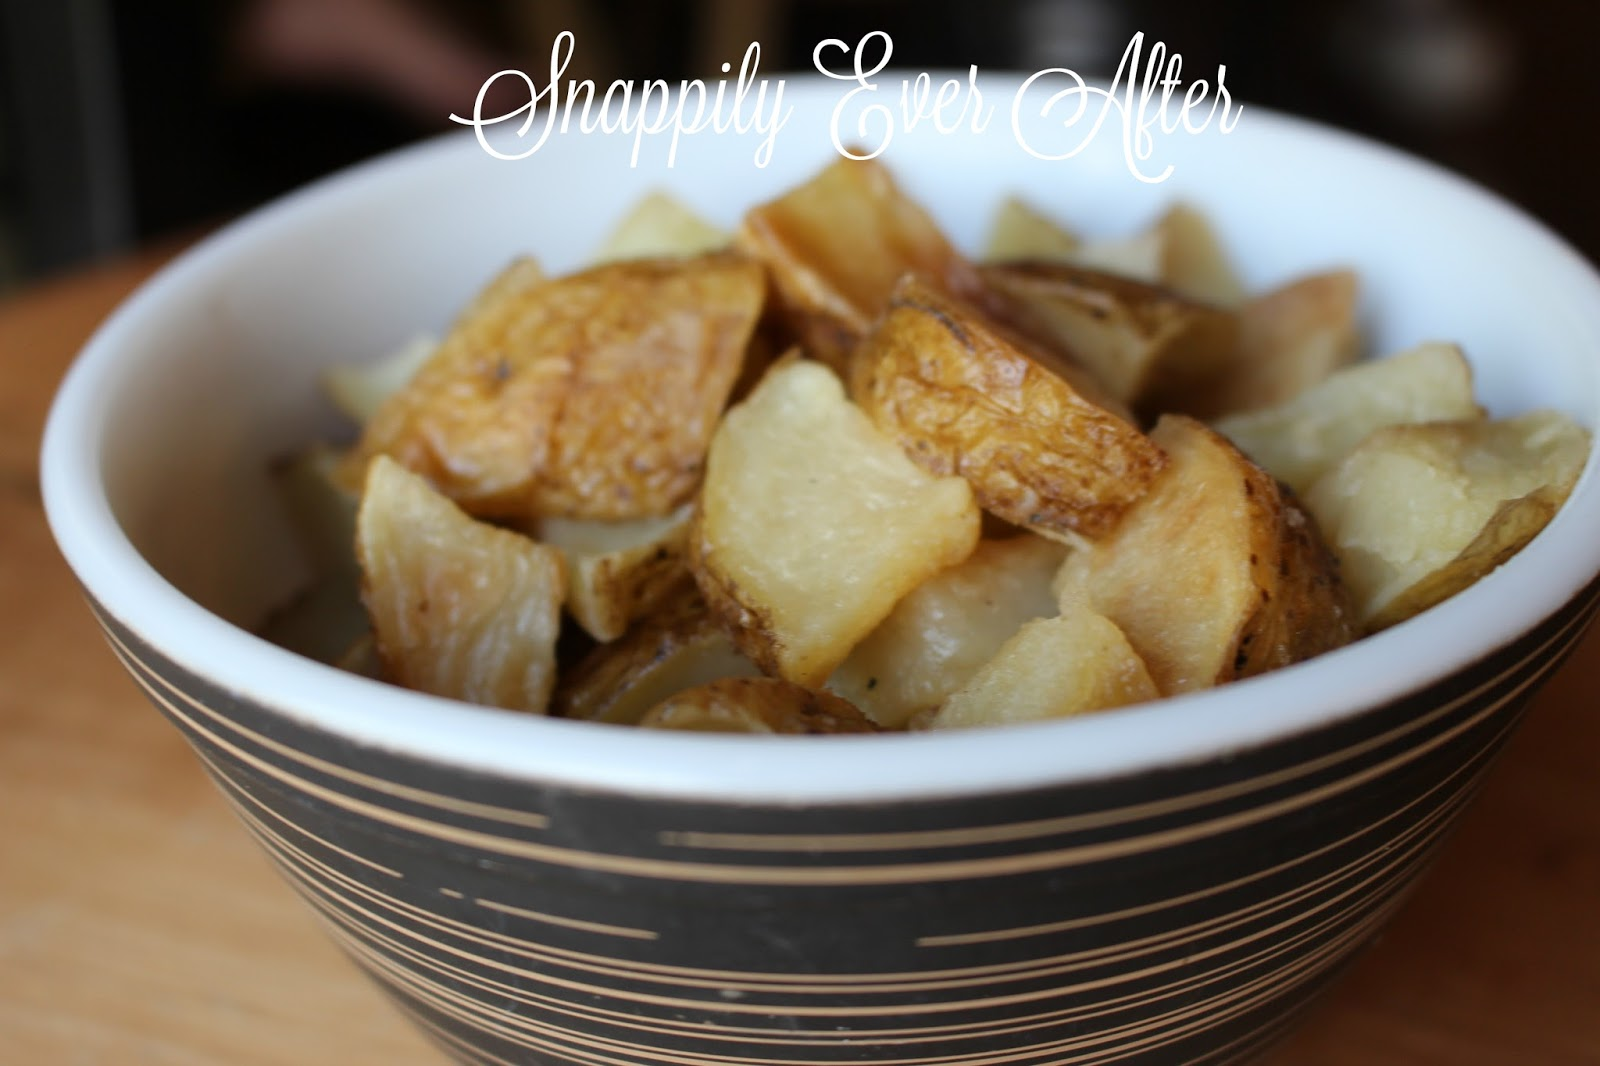 Snappily Ever After: Salt and Vinegar Roasted Potatoes